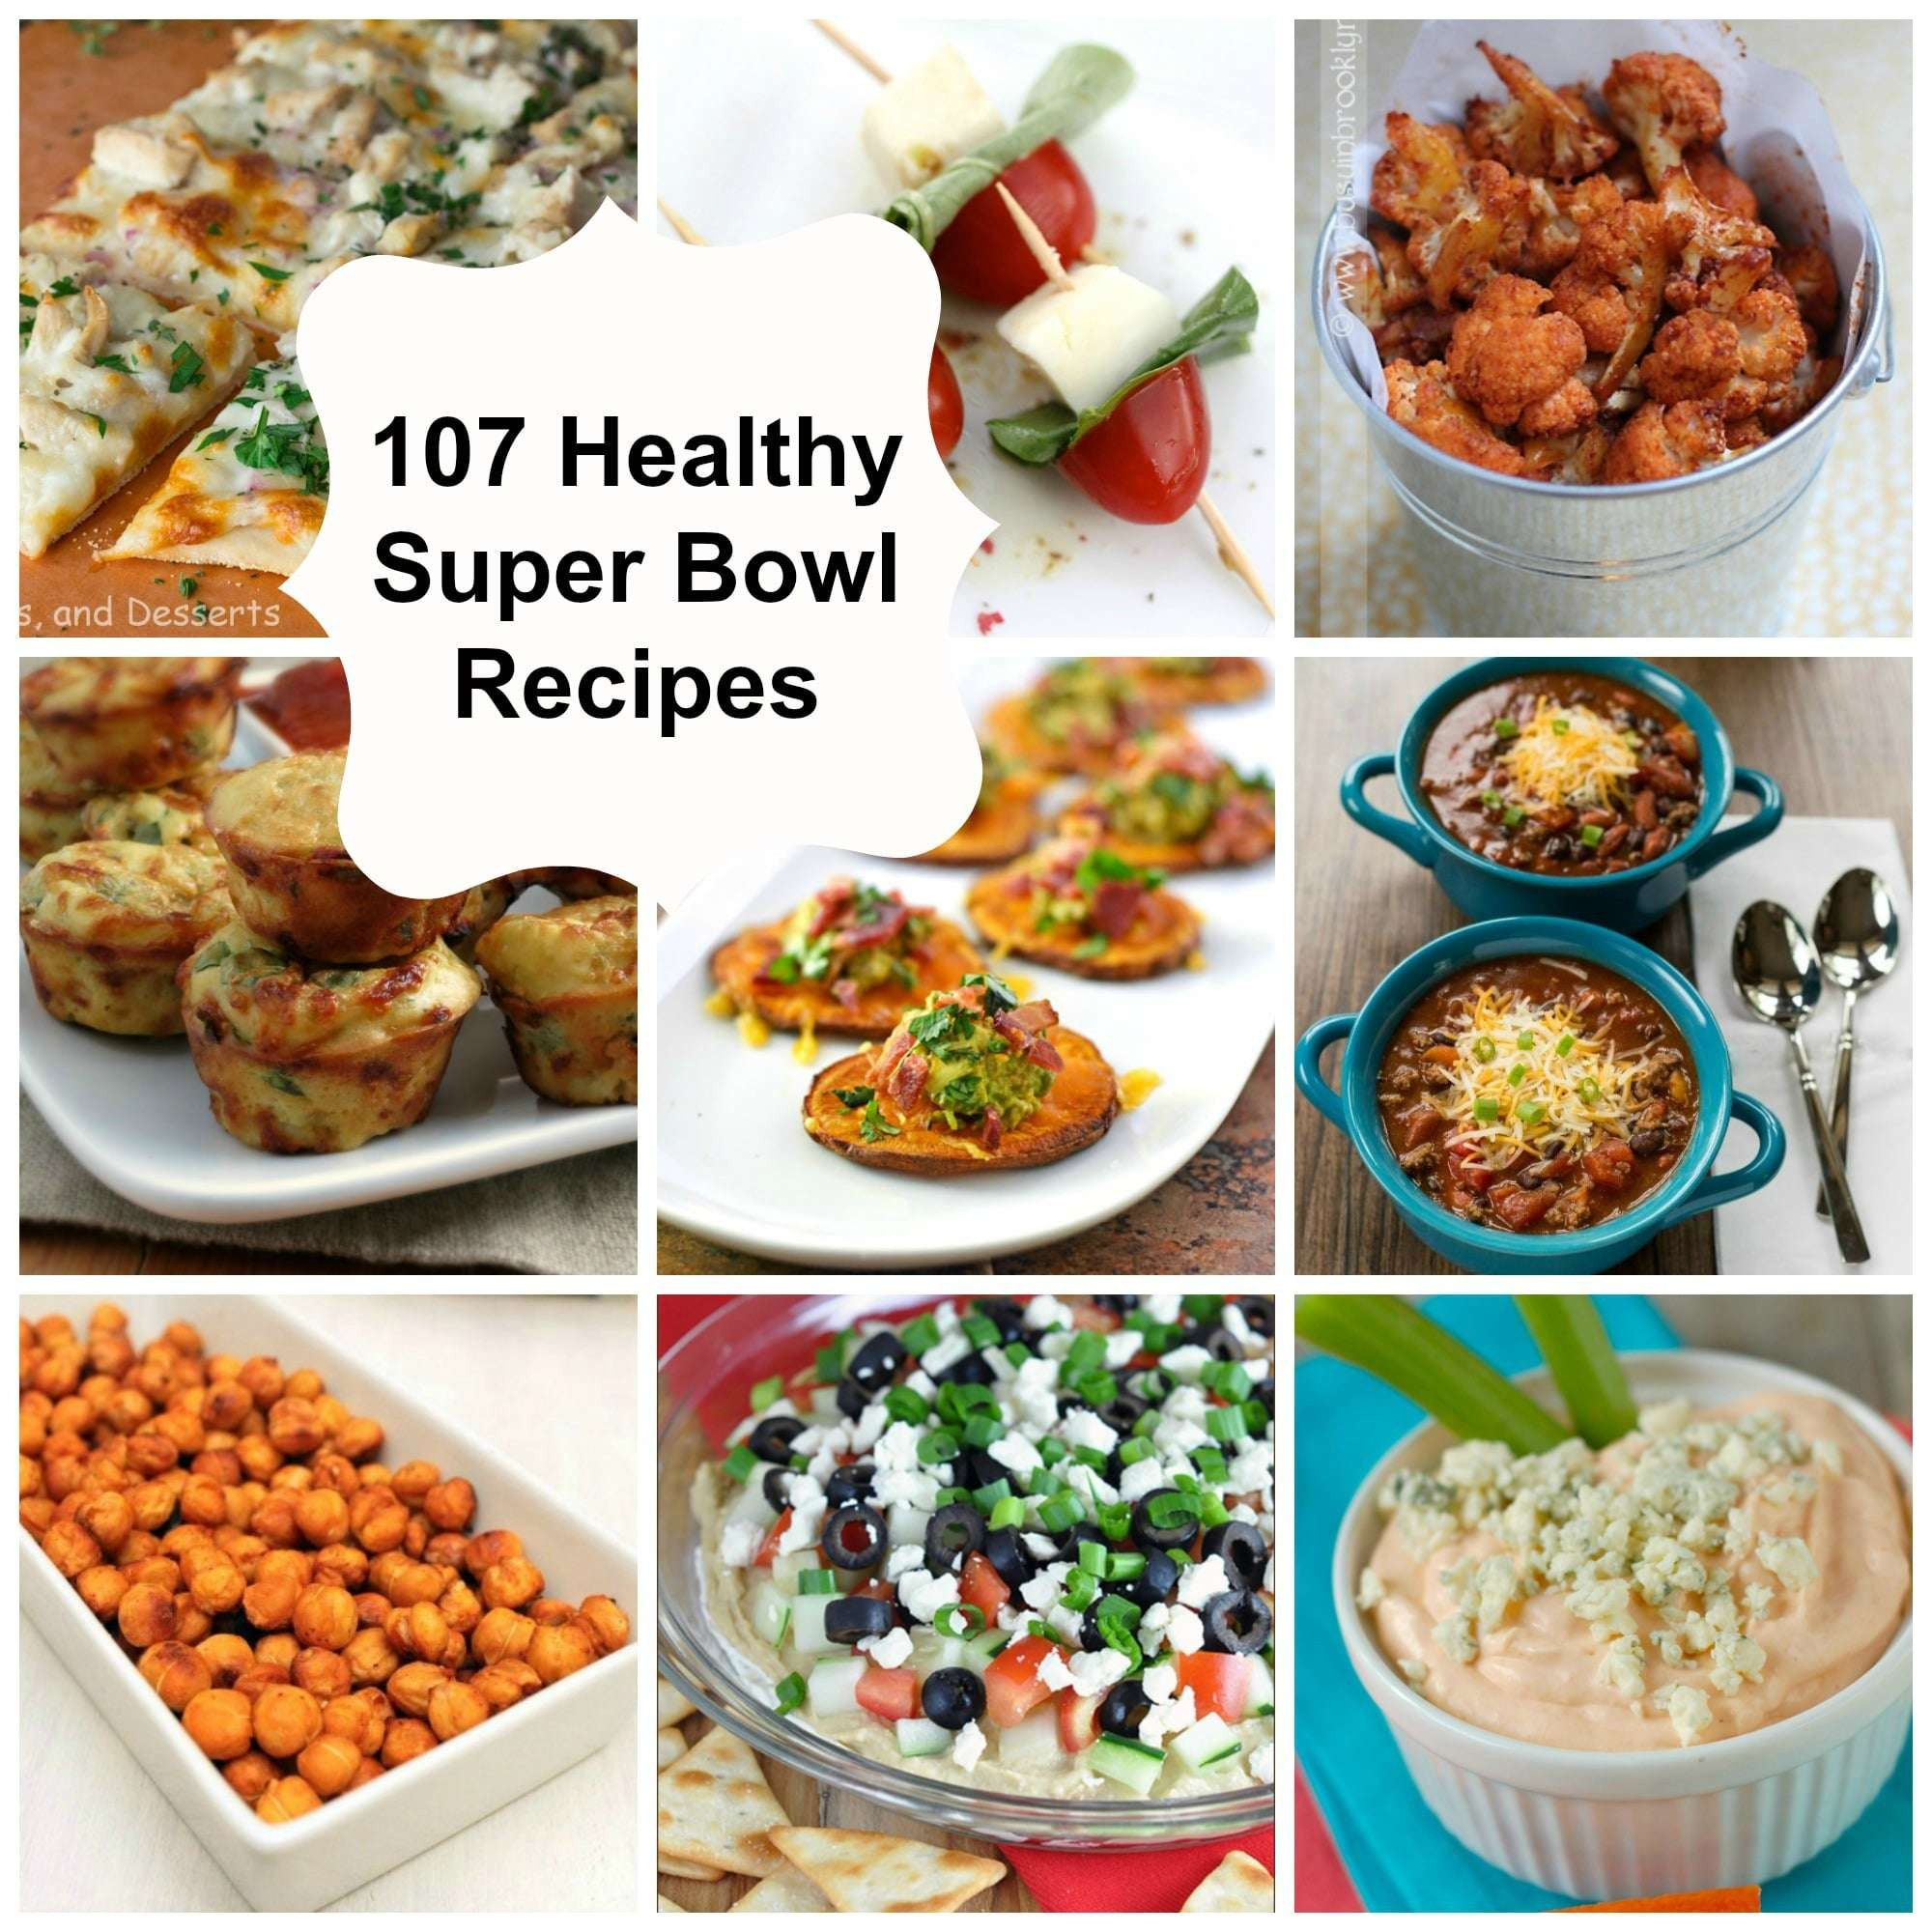 Superbowl Healthy Appetizers  107 Healthy Super Bowl Recipes A Cedar Spoon